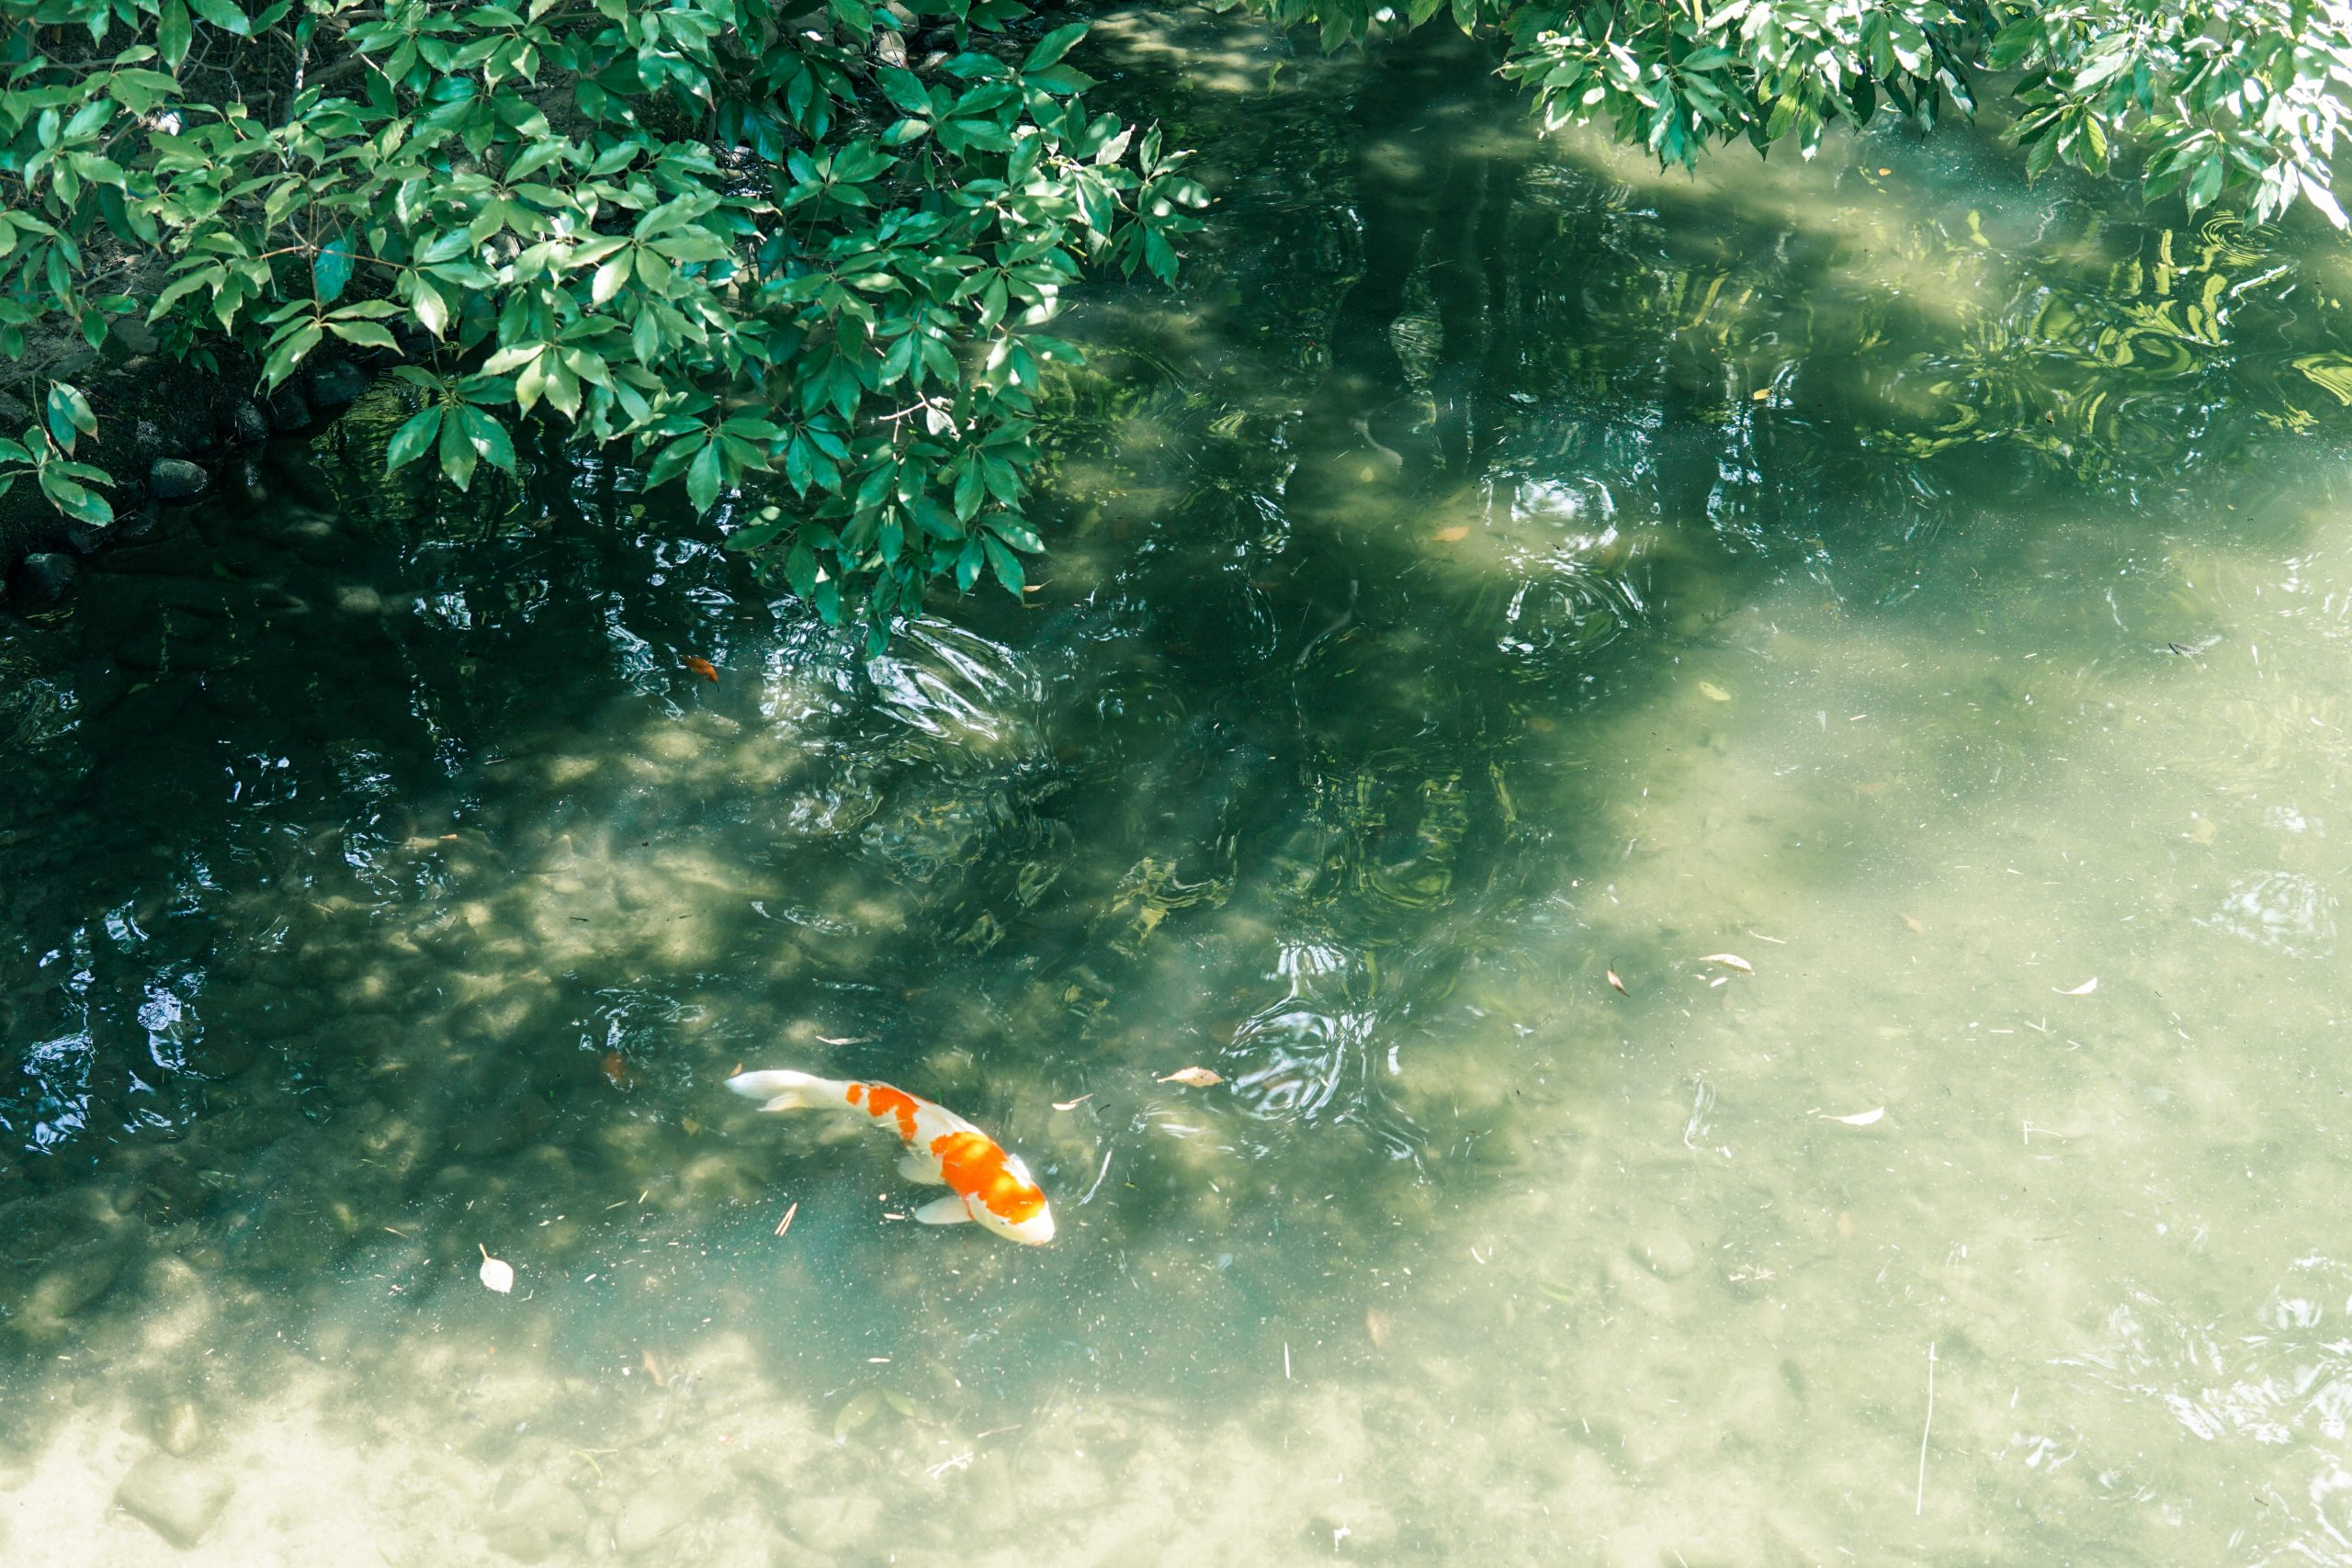 picture of a koi fish swimming in a pond